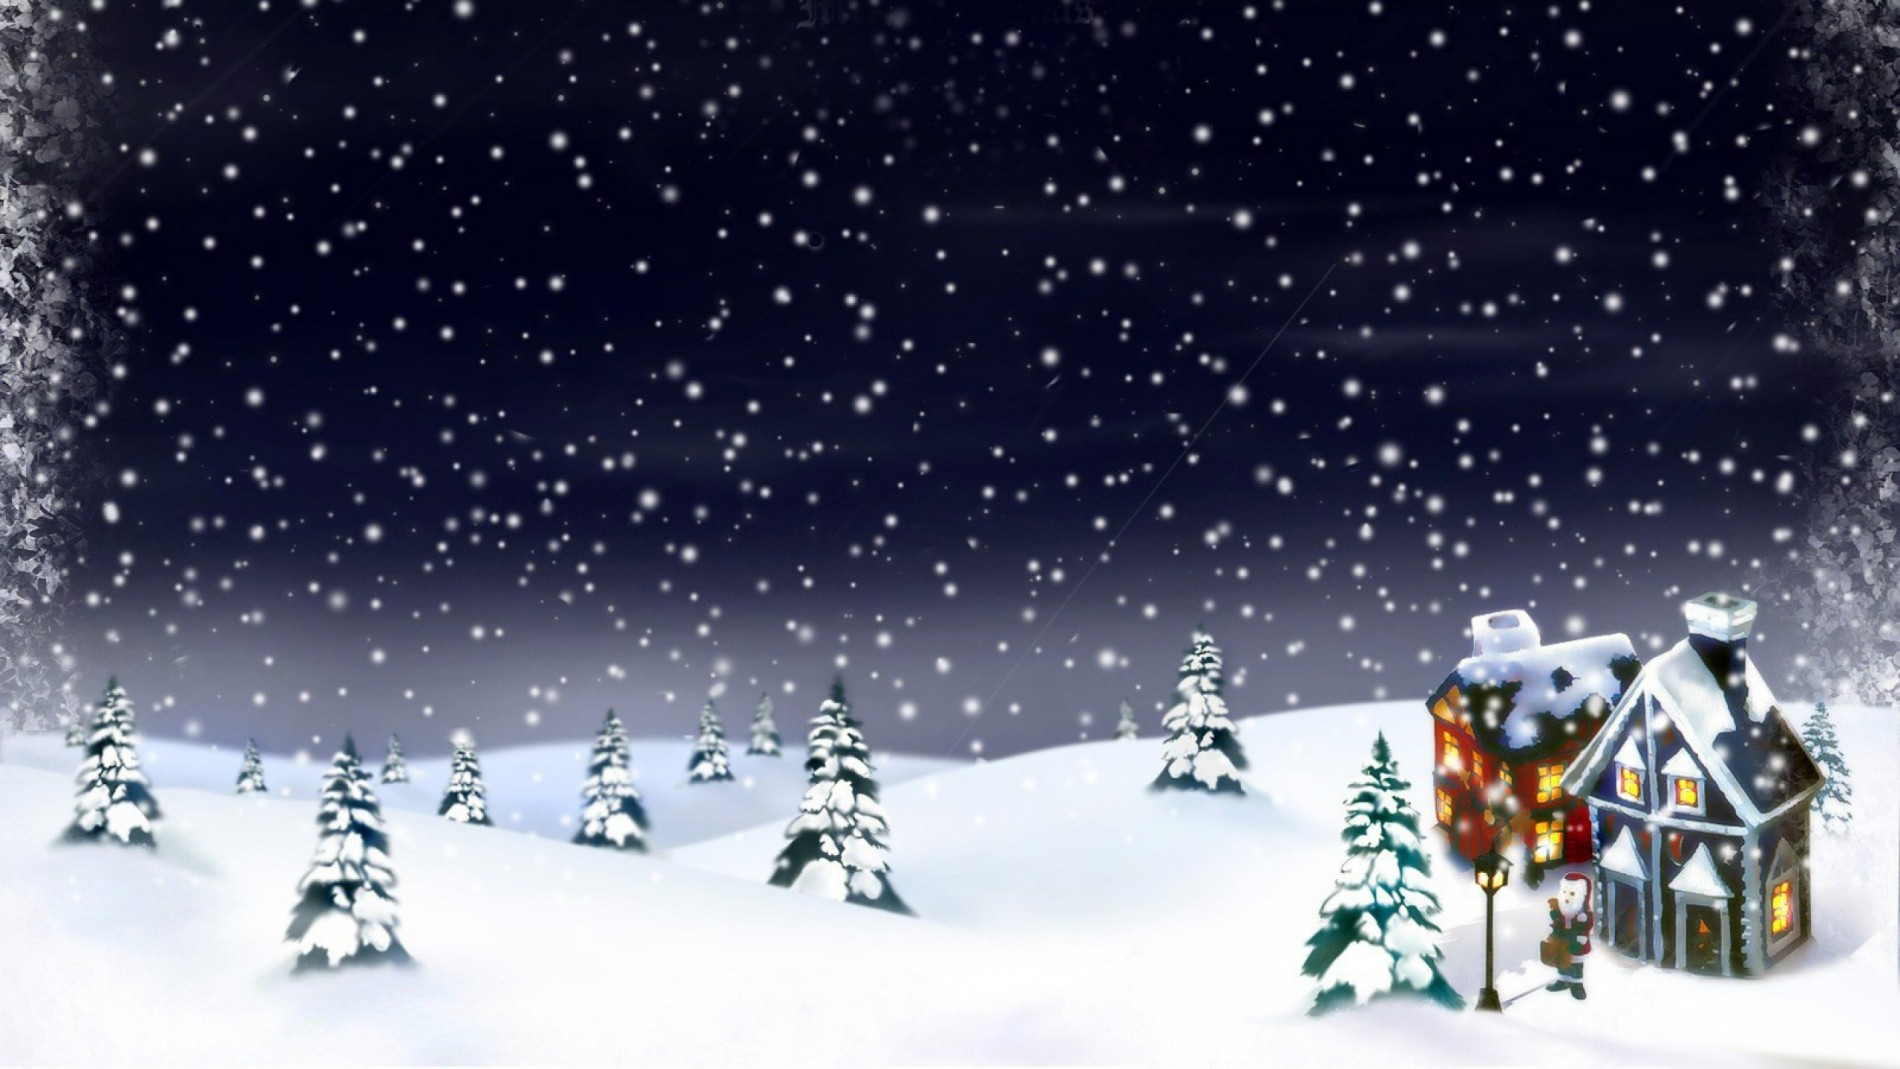 Christmas Snow.2015 Christmas Snow Background Central Property Lettings